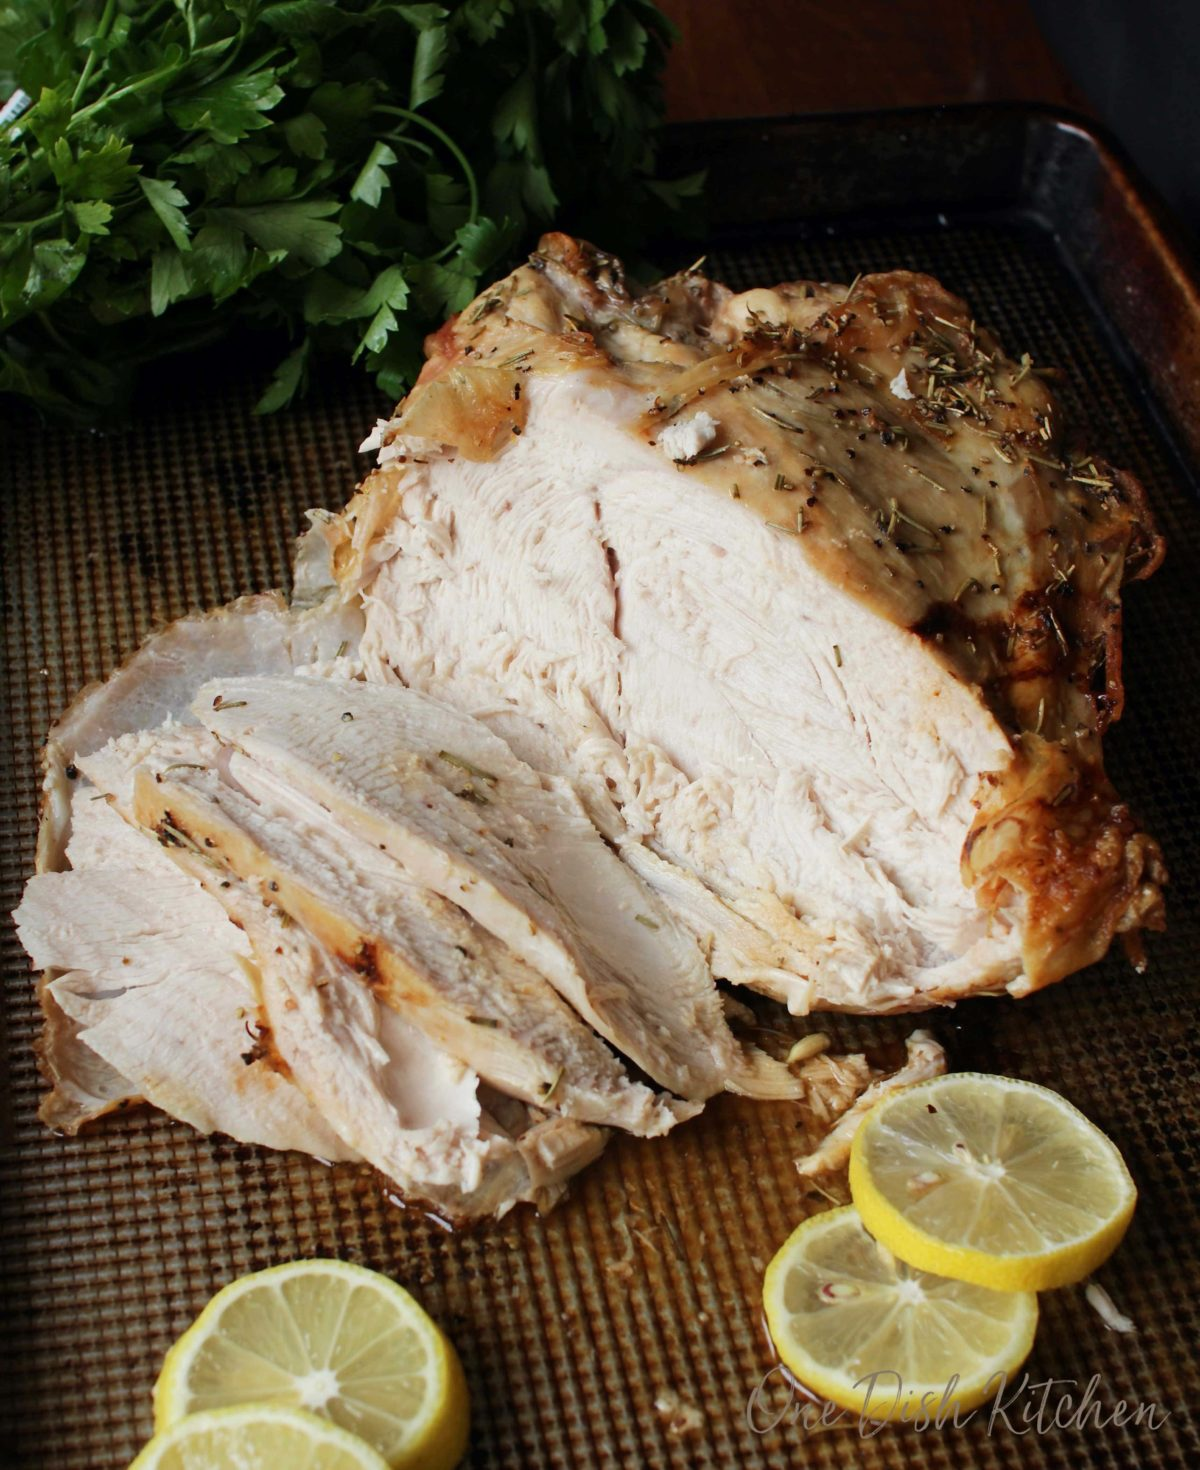 Roast turkey breast cut into slices on a baking dish with four lemon wheels